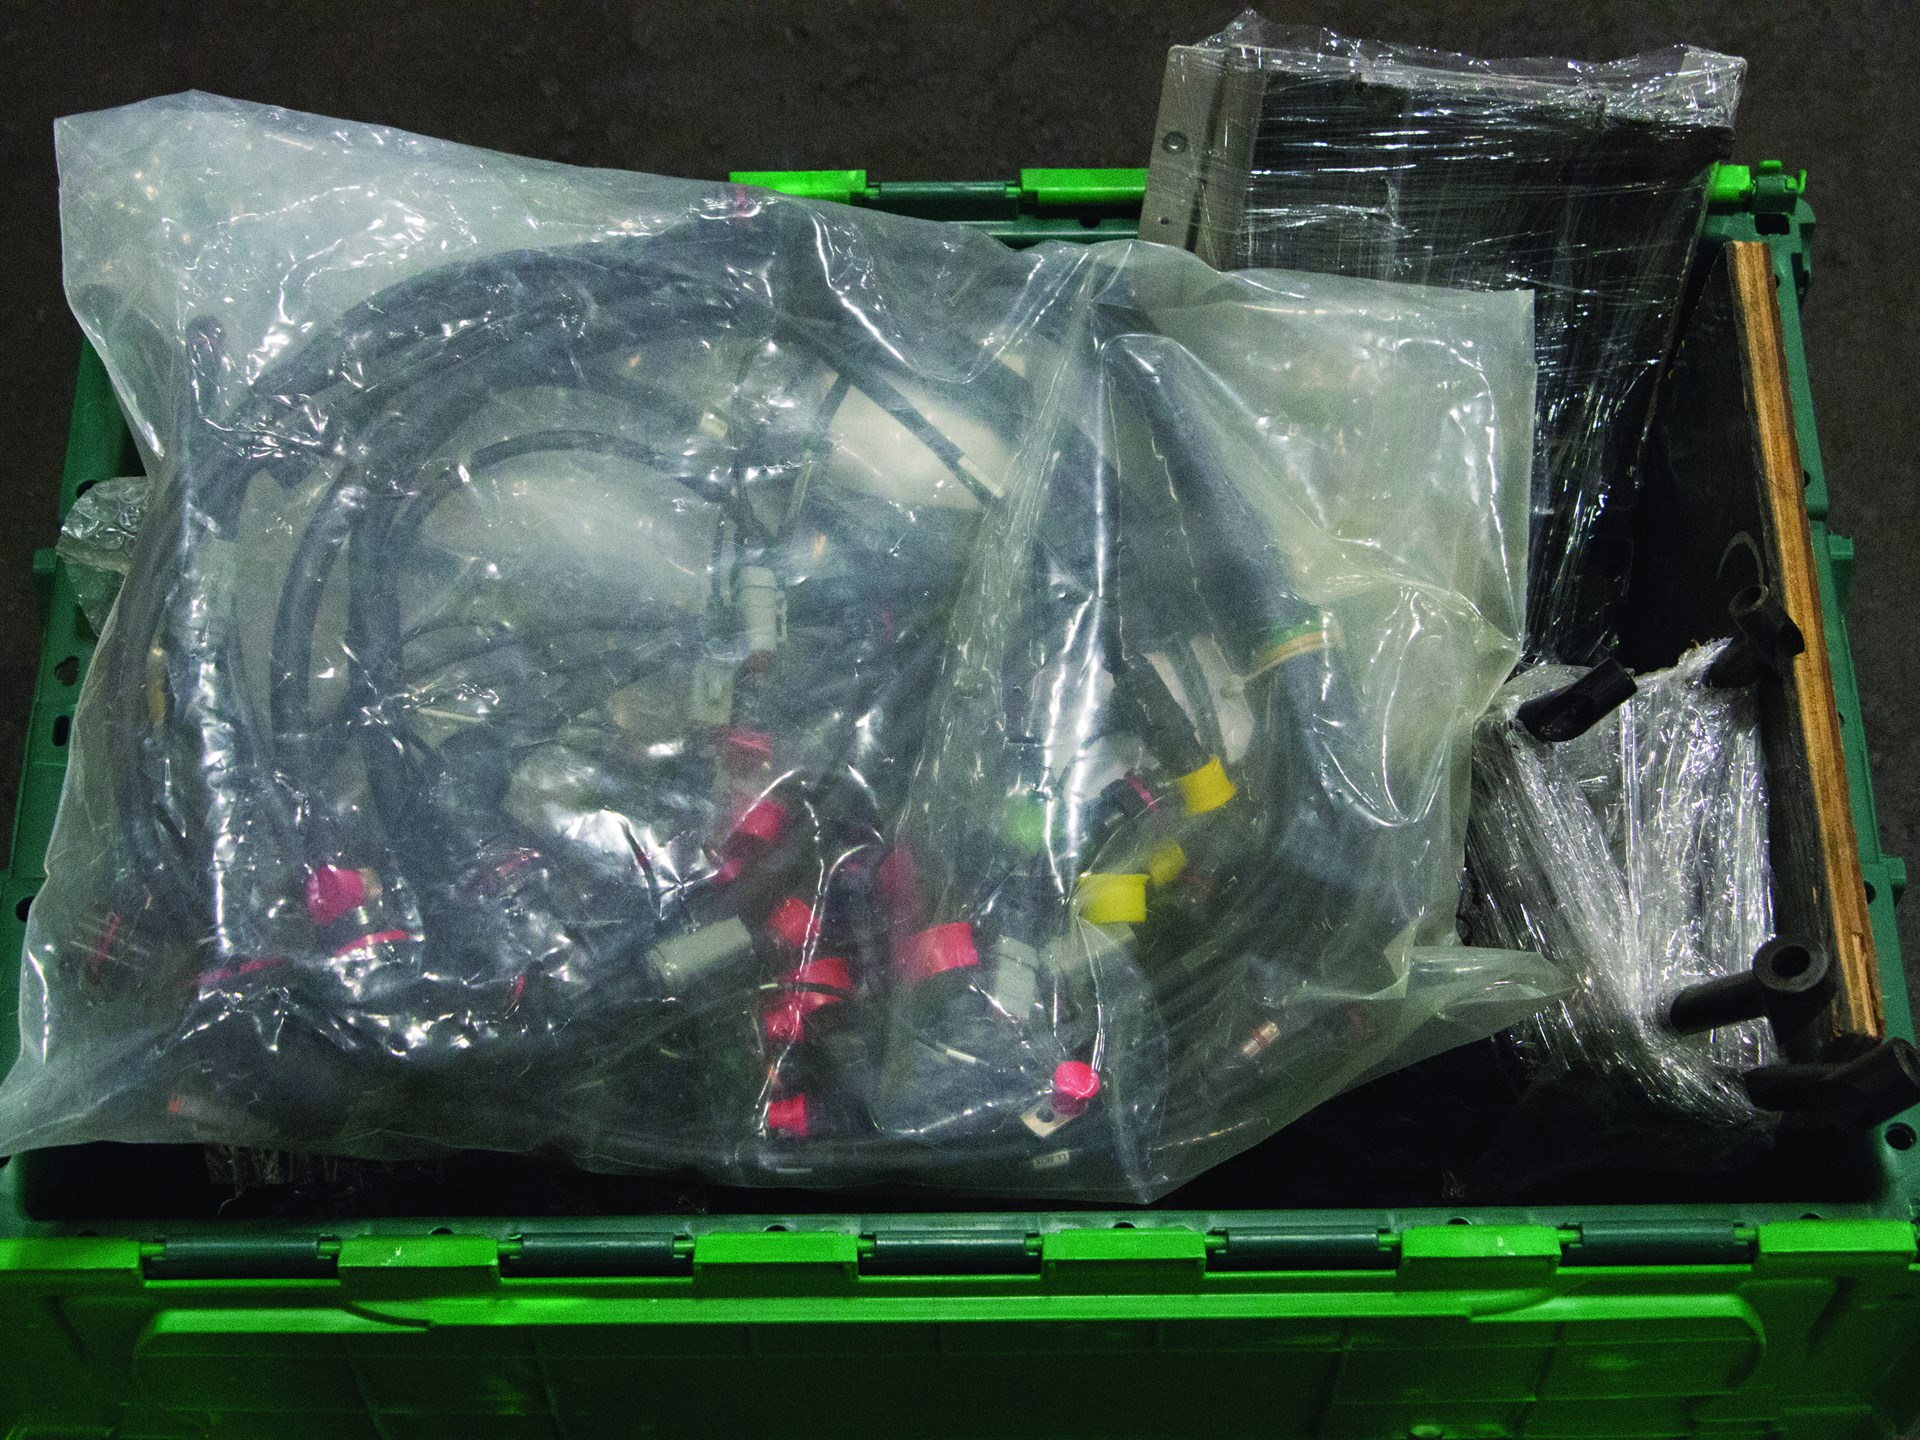 wiring harness and assorted hpd arx-03 parts